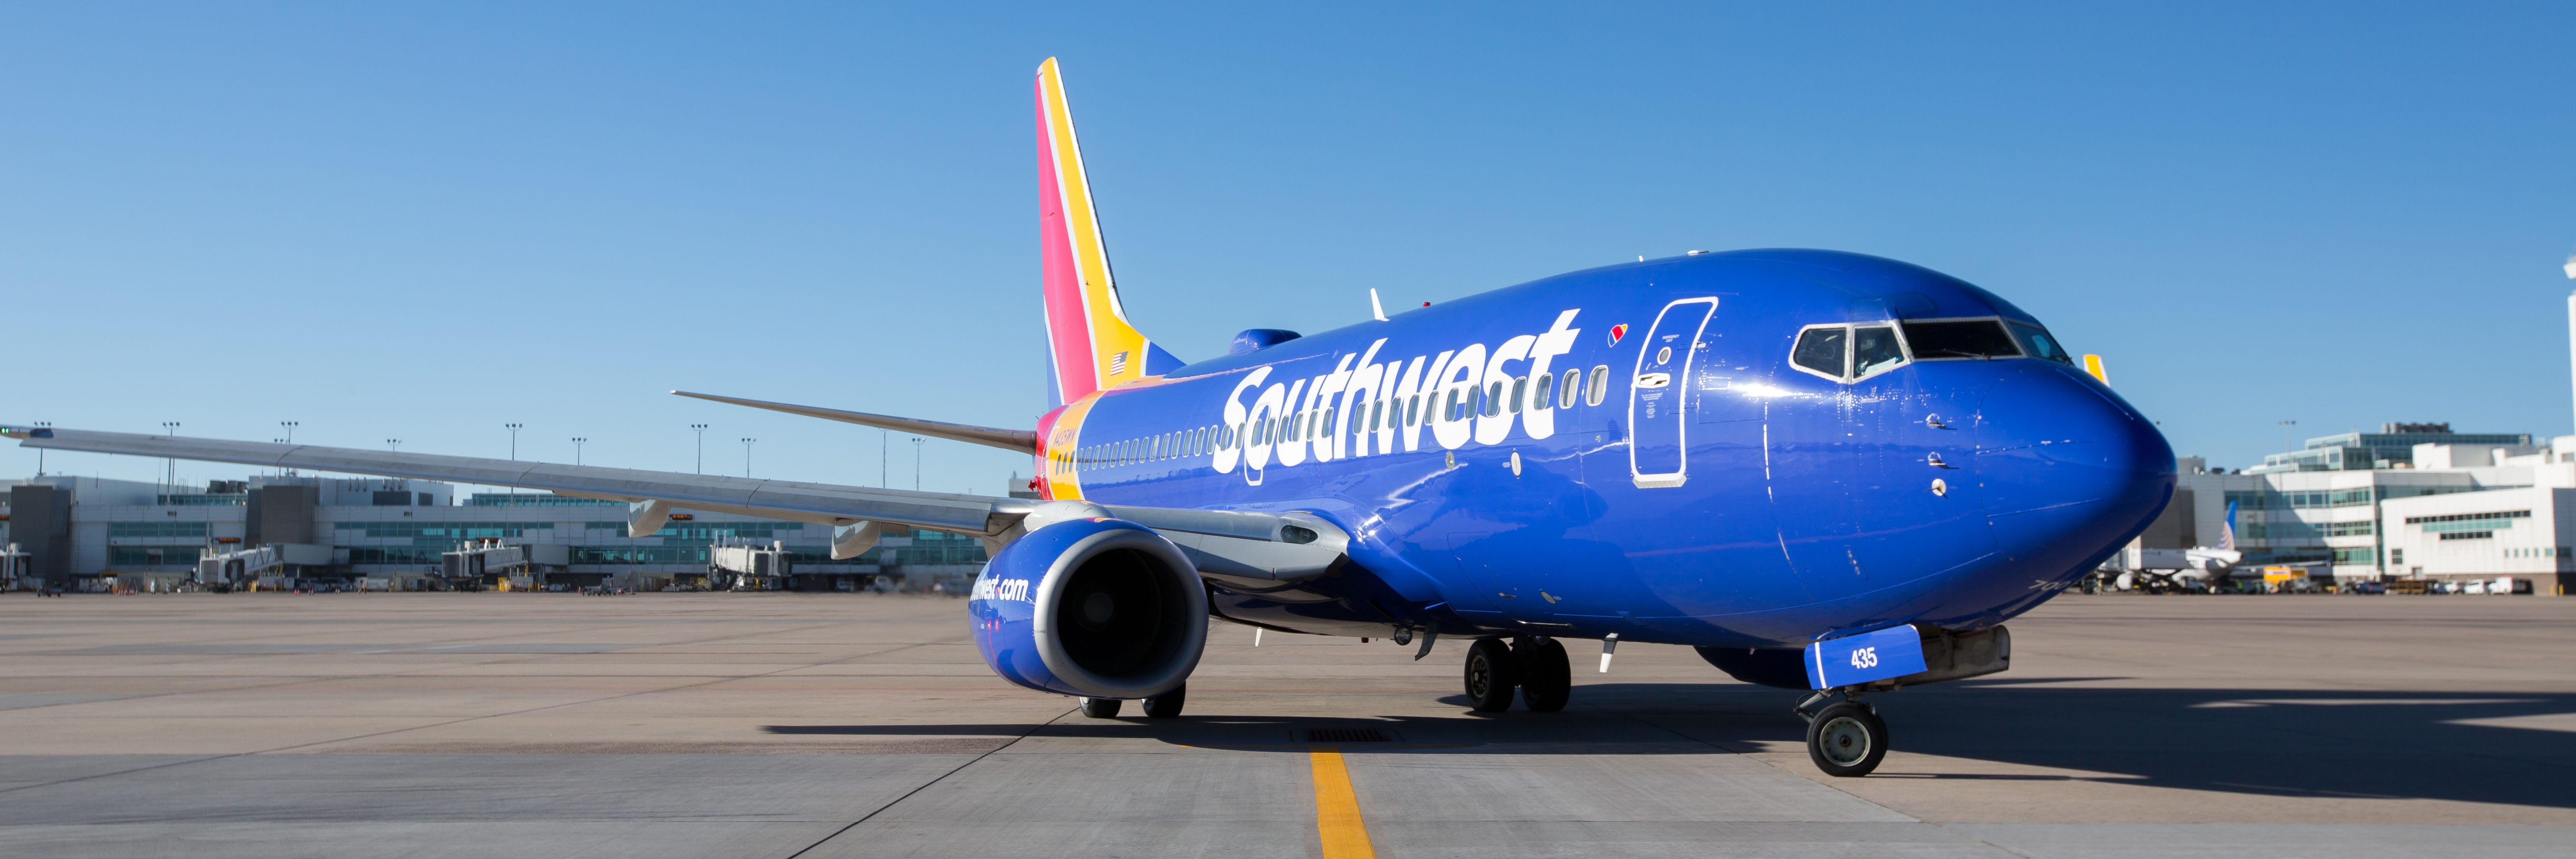 Photo of Southwest Airlines 737 plane